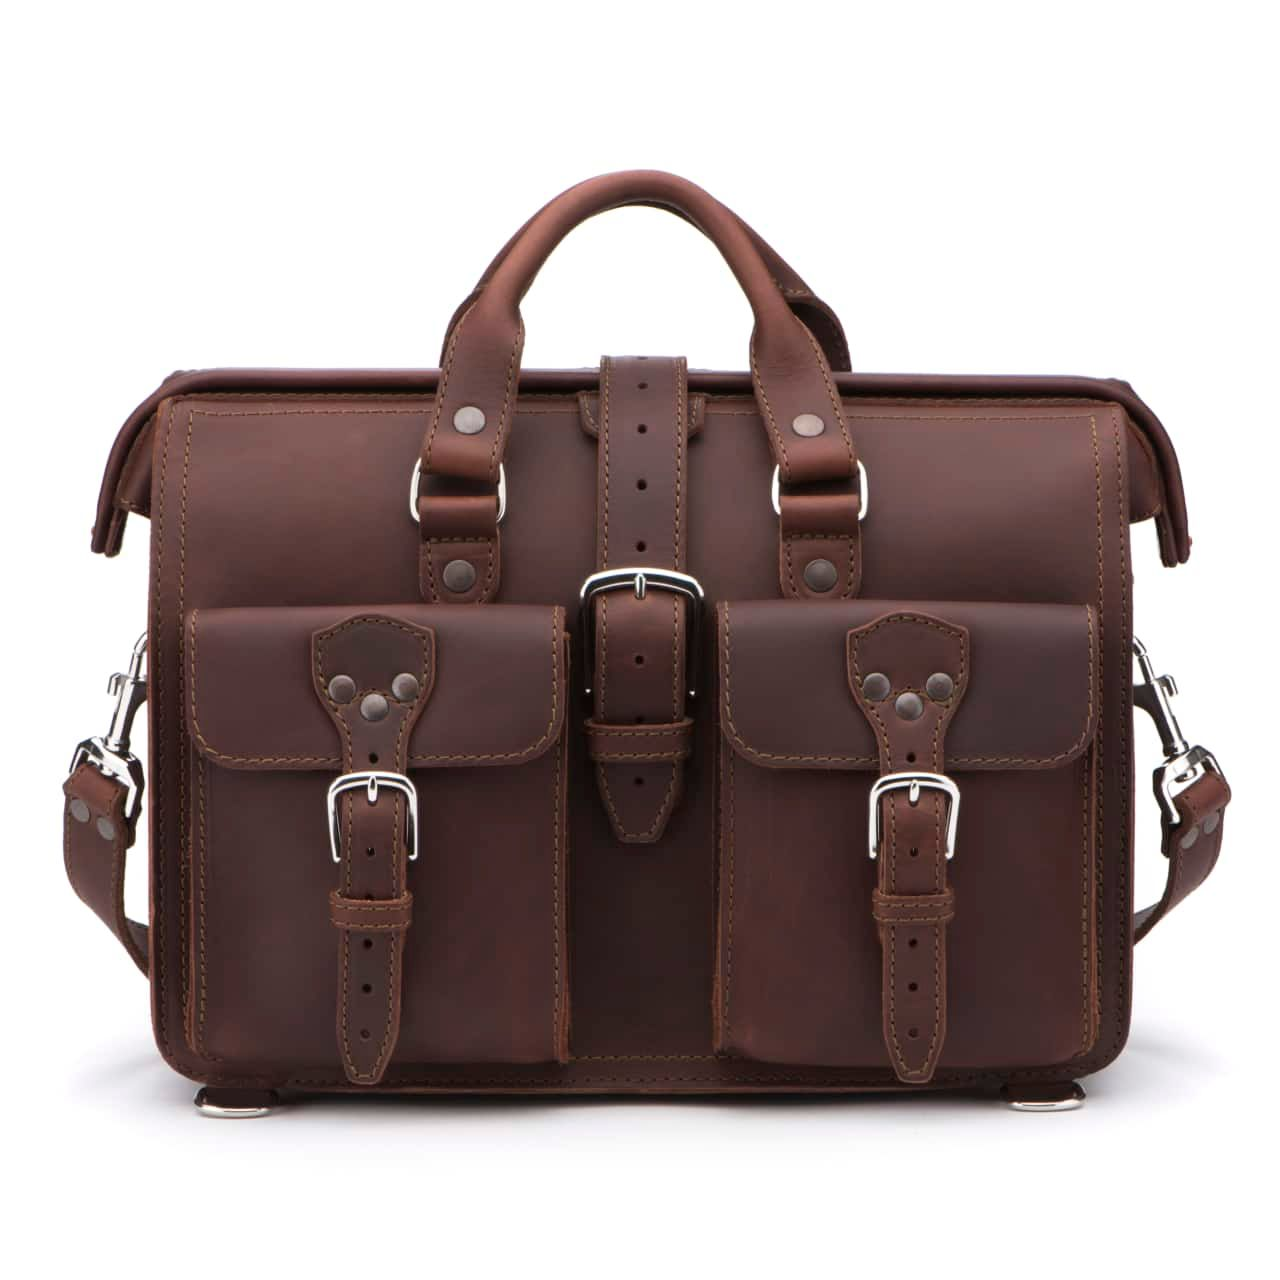 Leather Flight Bag in color Chestnut shown from the Front